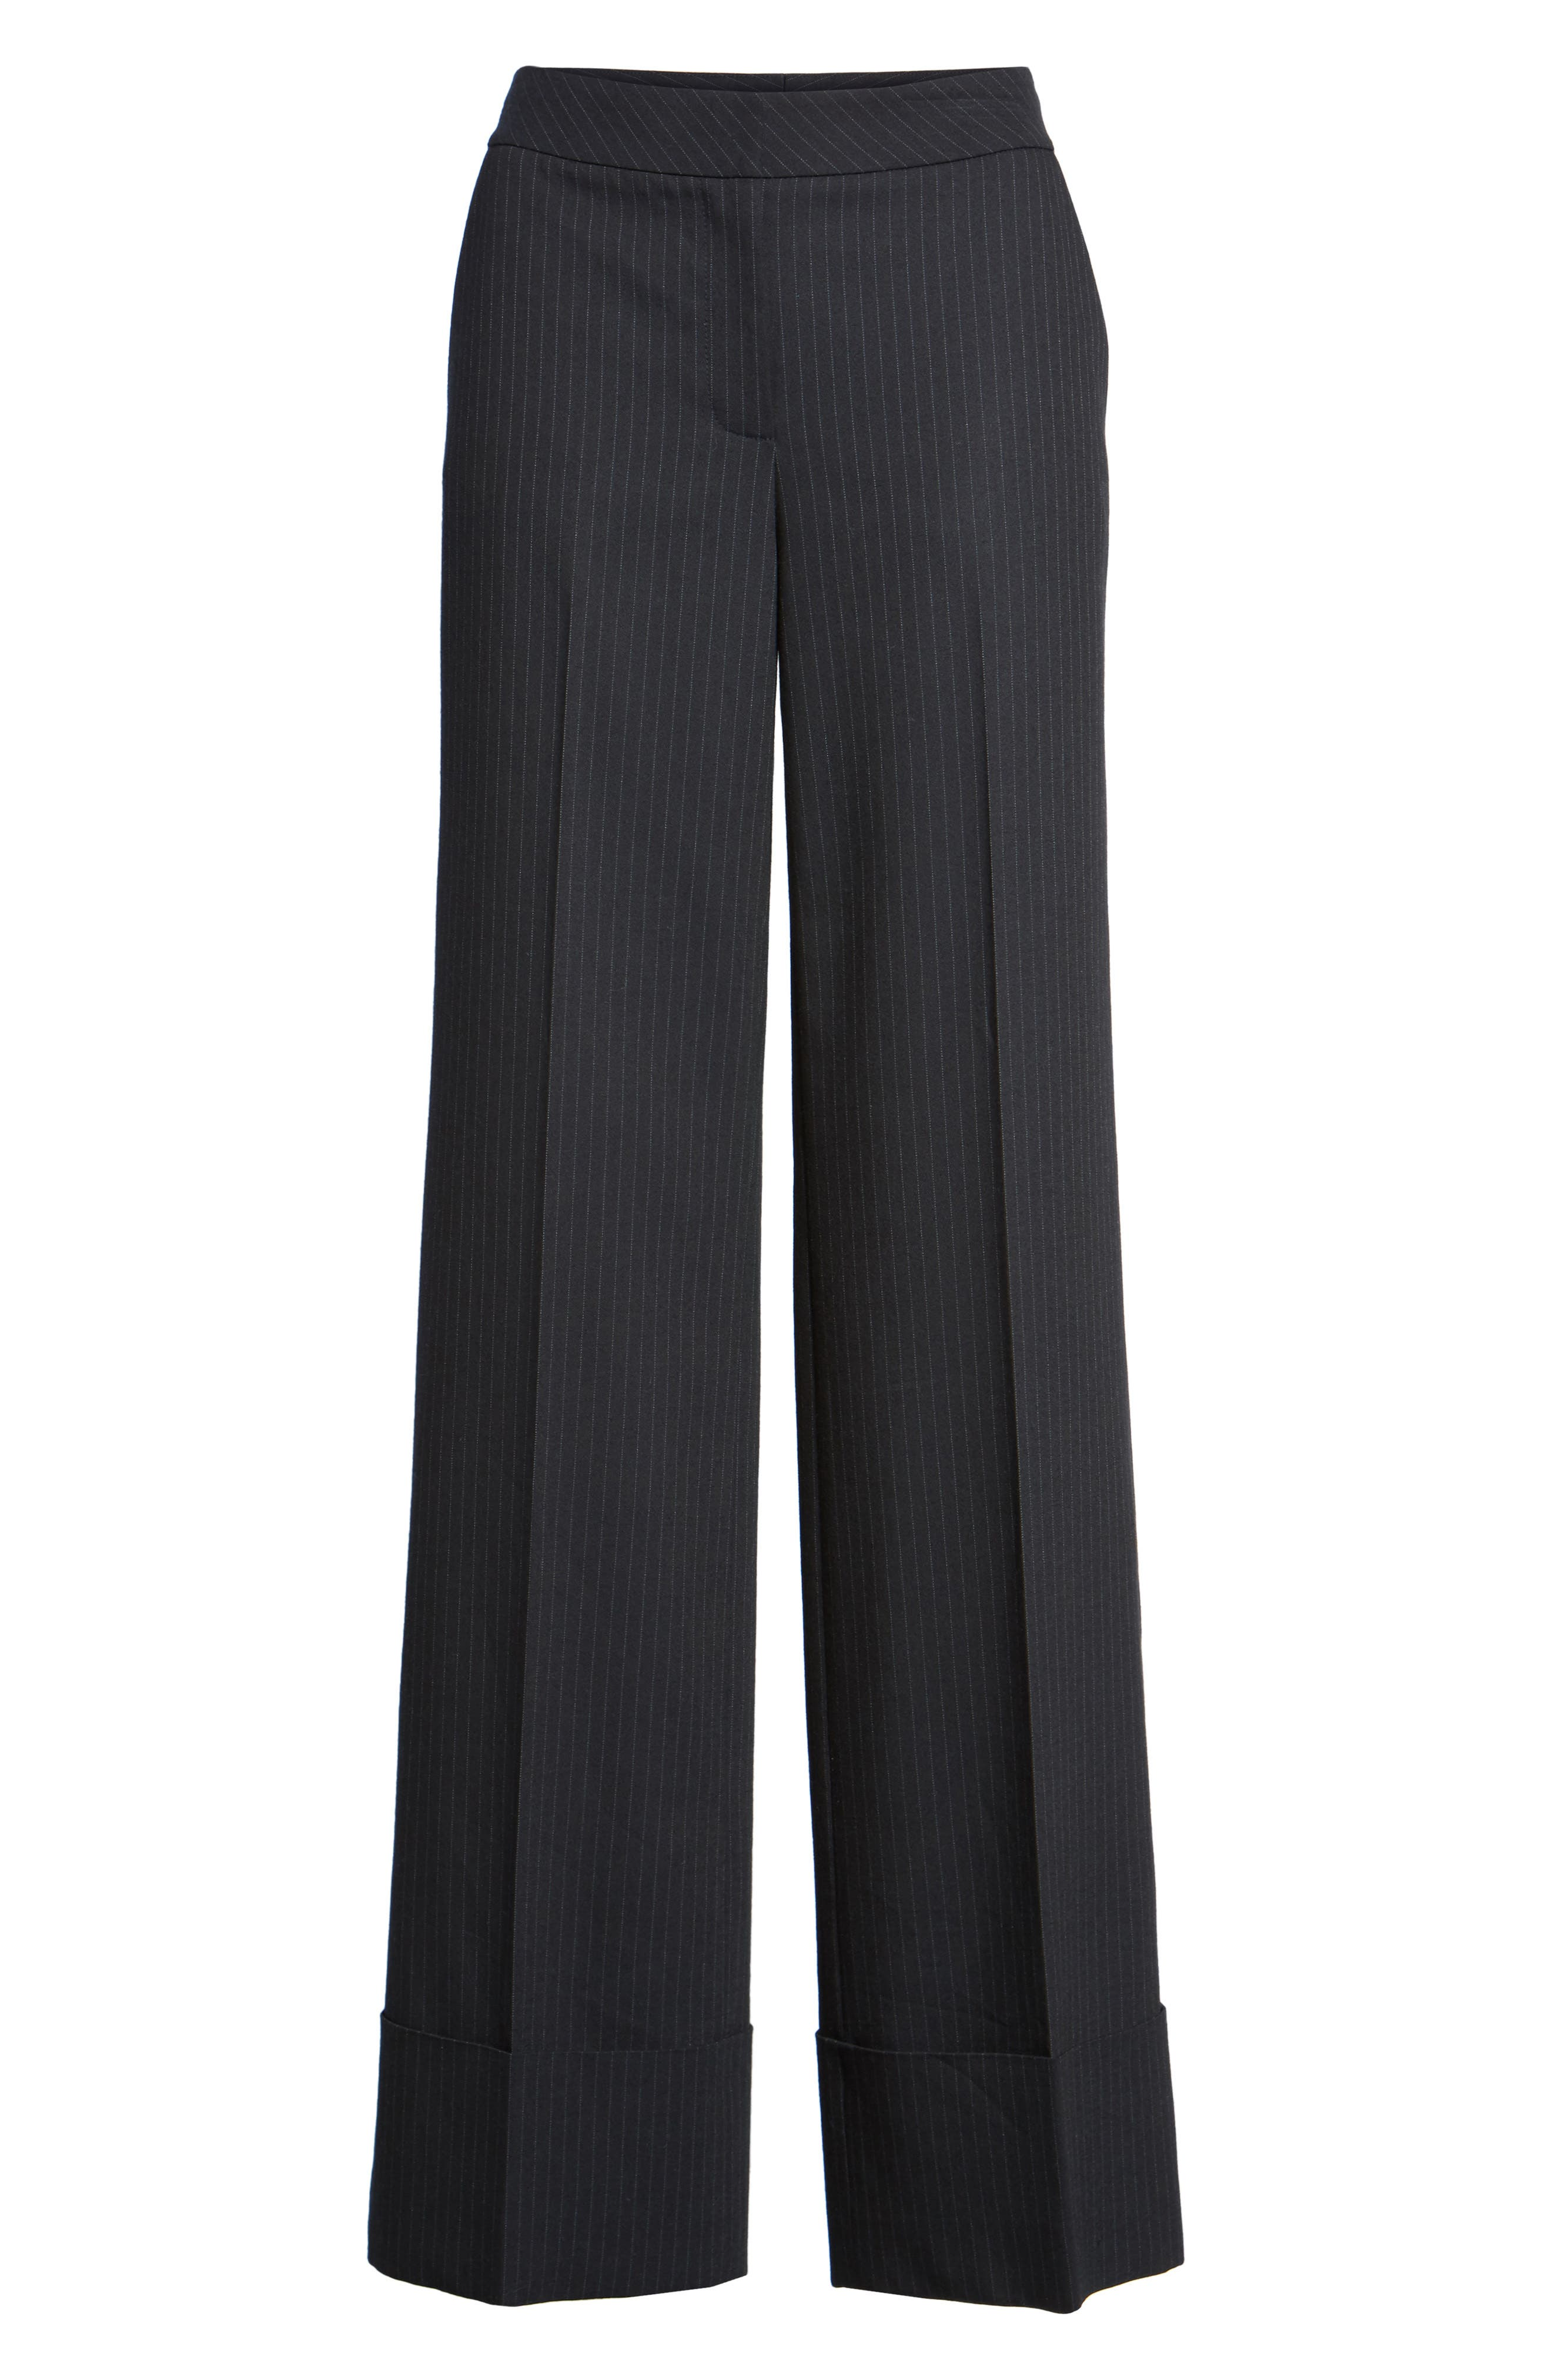 Cuffed Wide Leg Pinstripe Suit Pants,                             Alternate thumbnail 6, color,